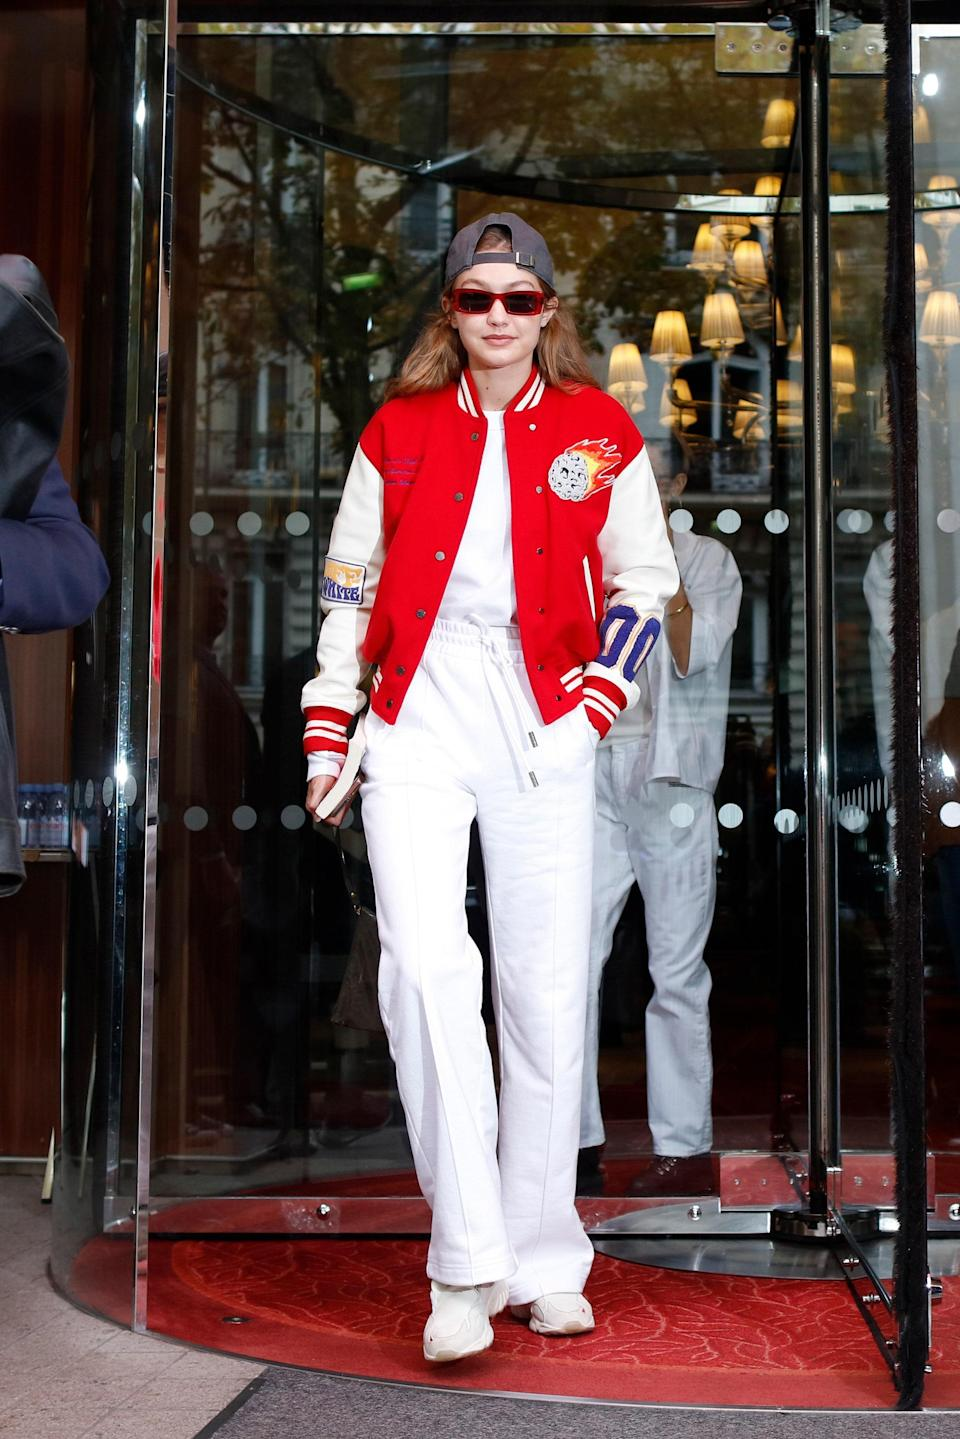 Batter up! Gigi put an even sportier spin on this athleisure look, pairing a red, white, and blue baseball jacket with a white sweatshirt and matching joggers and capping it all off with a backward hat. TBH, we'll be rooting for Team Gigi all season long.